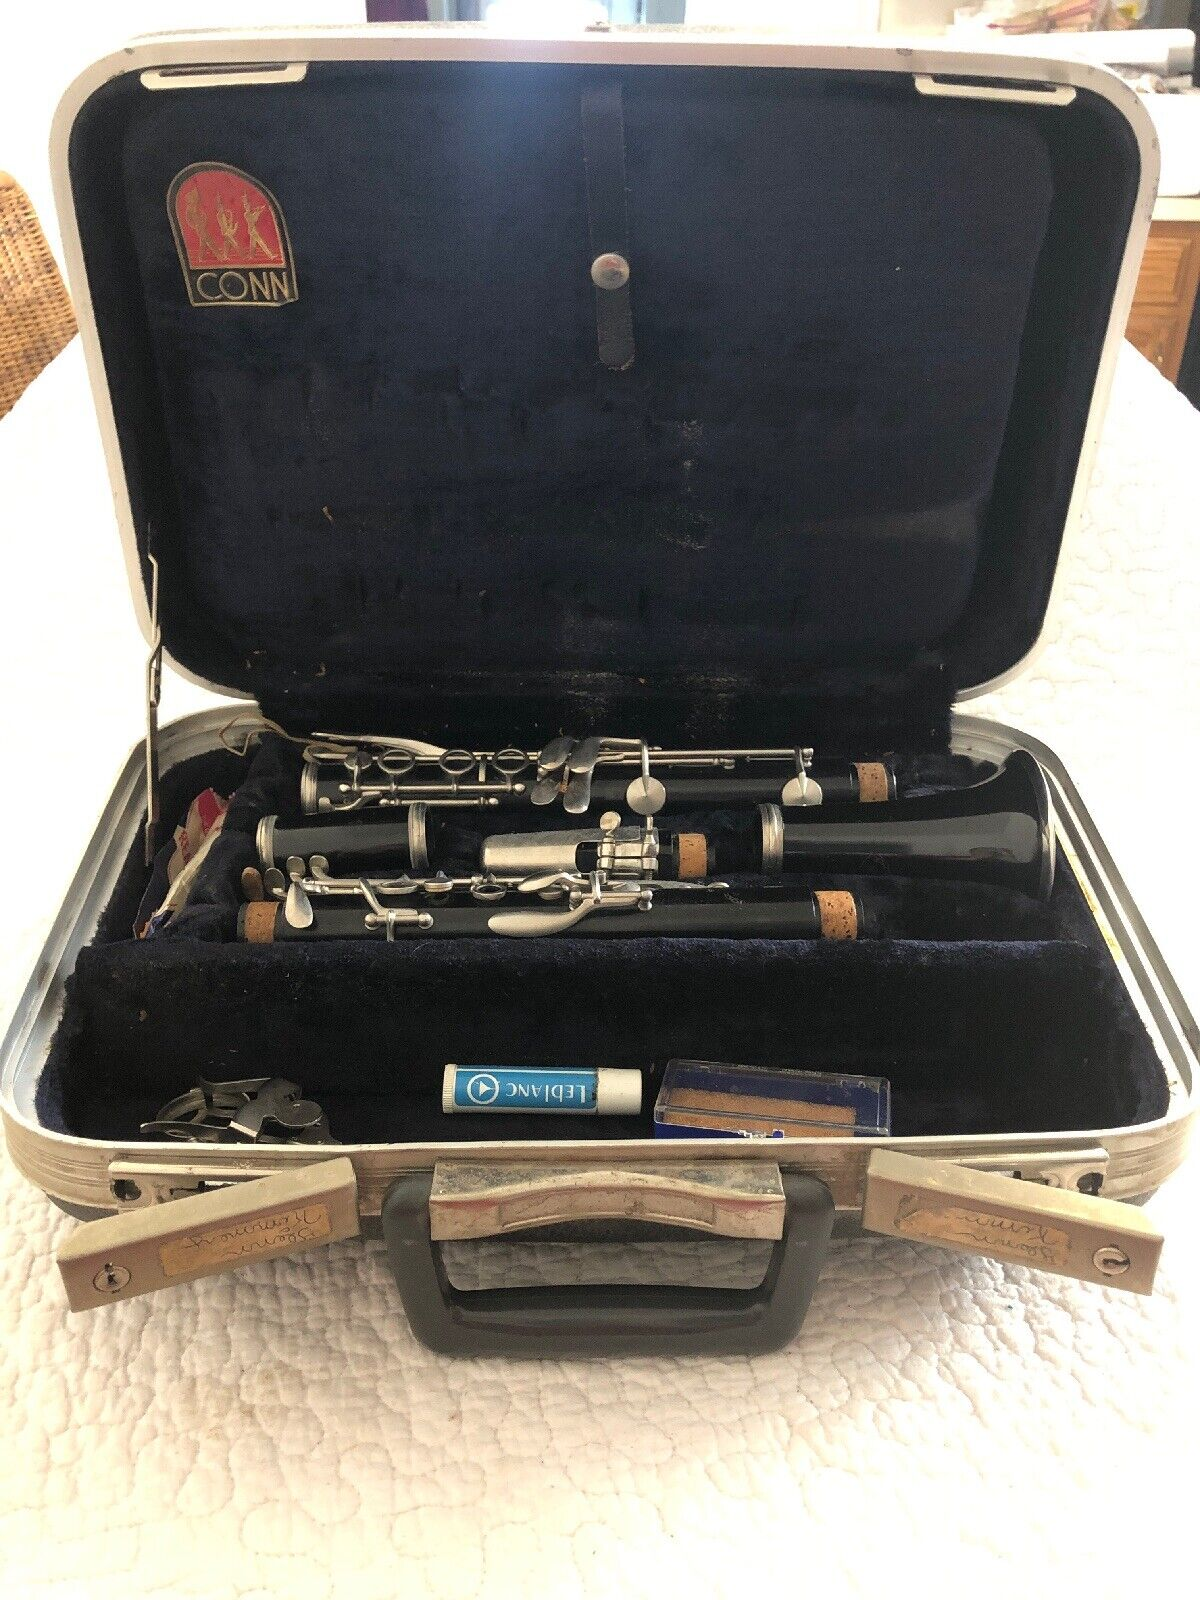 CONN 16 CLARINET With Conn Hard shell Case